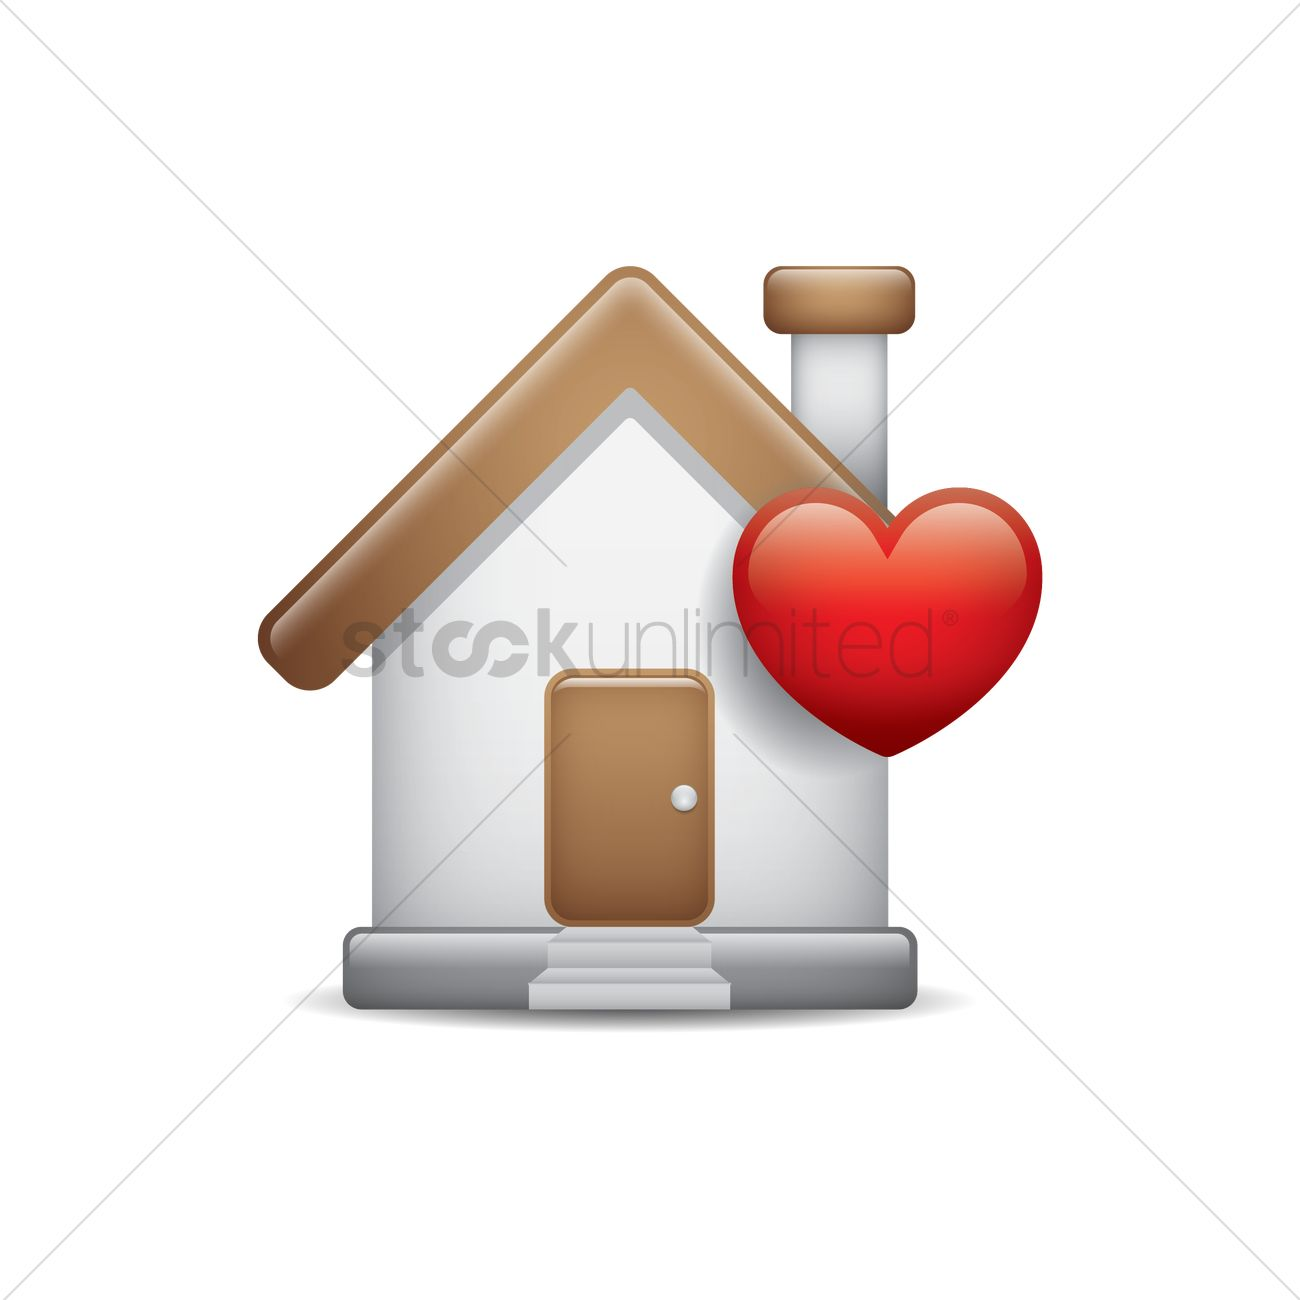 Pleasant House With A Heart Icon Vector Image 1875258 Stockunlimited Home Remodeling Inspirations Genioncuboardxyz